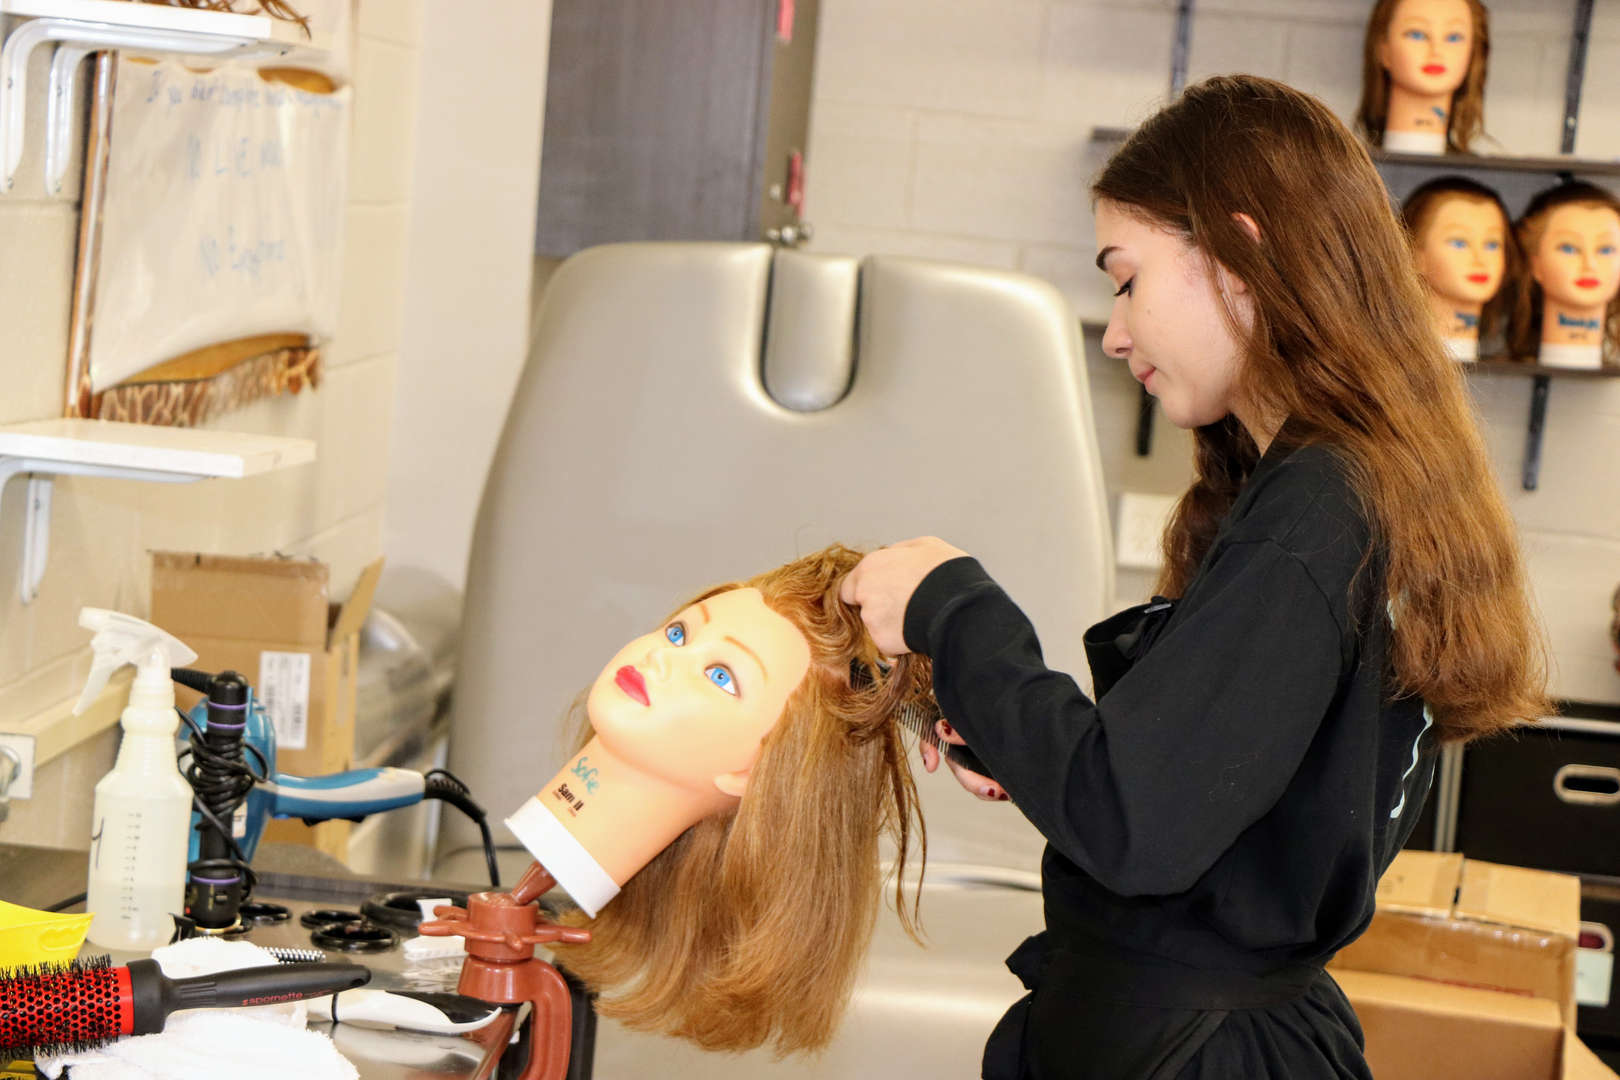 Cosmetology student works on a manikin